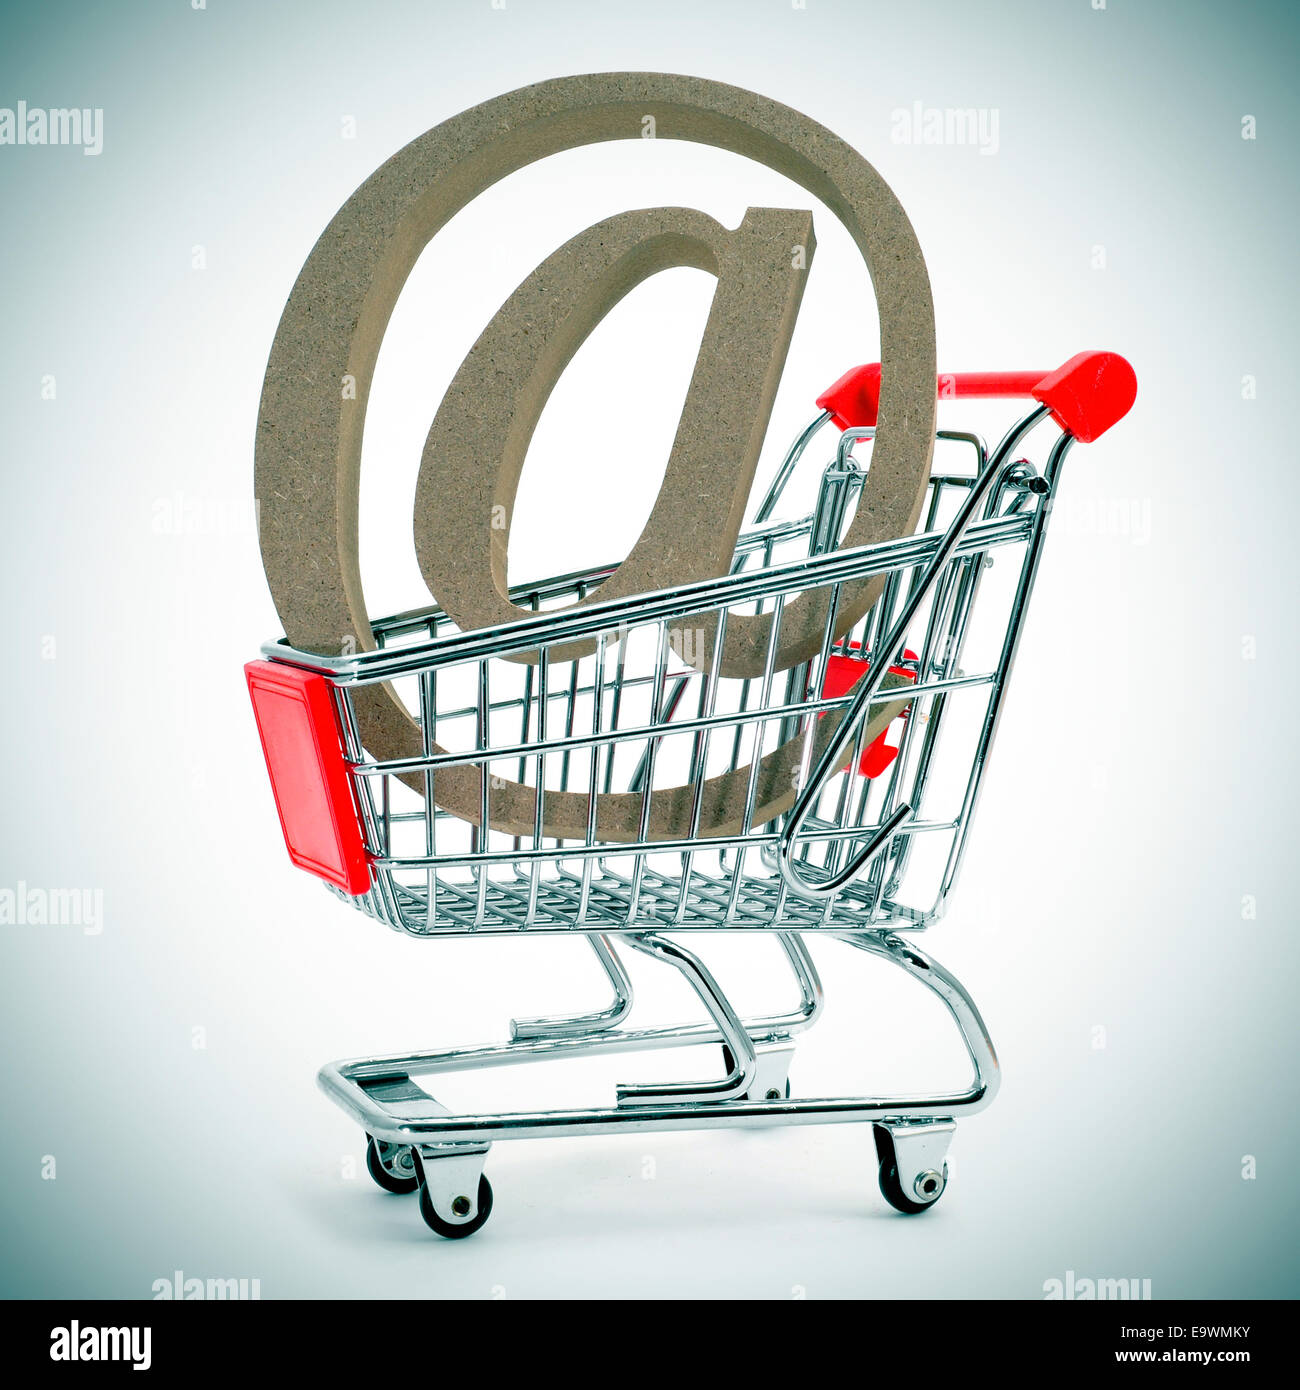 an at sign in a shopping cart, depicting the concept of e-shopping or e-commerce - Stock Image